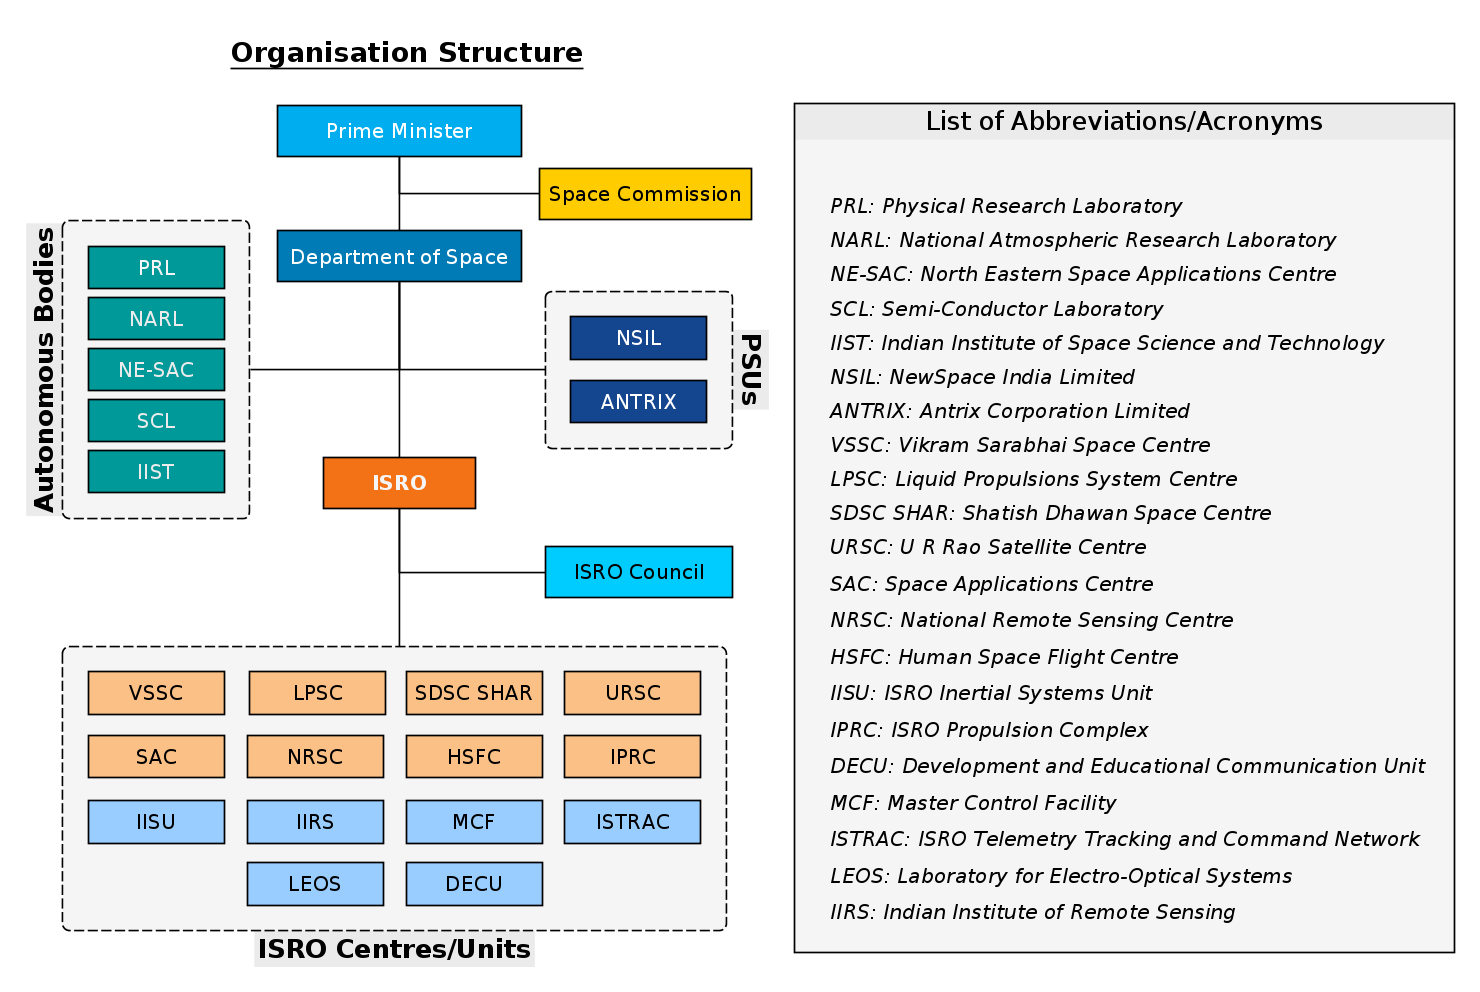 Organizational Chart For Word: Department of Space (India) - organization chart.jpg ,Chart